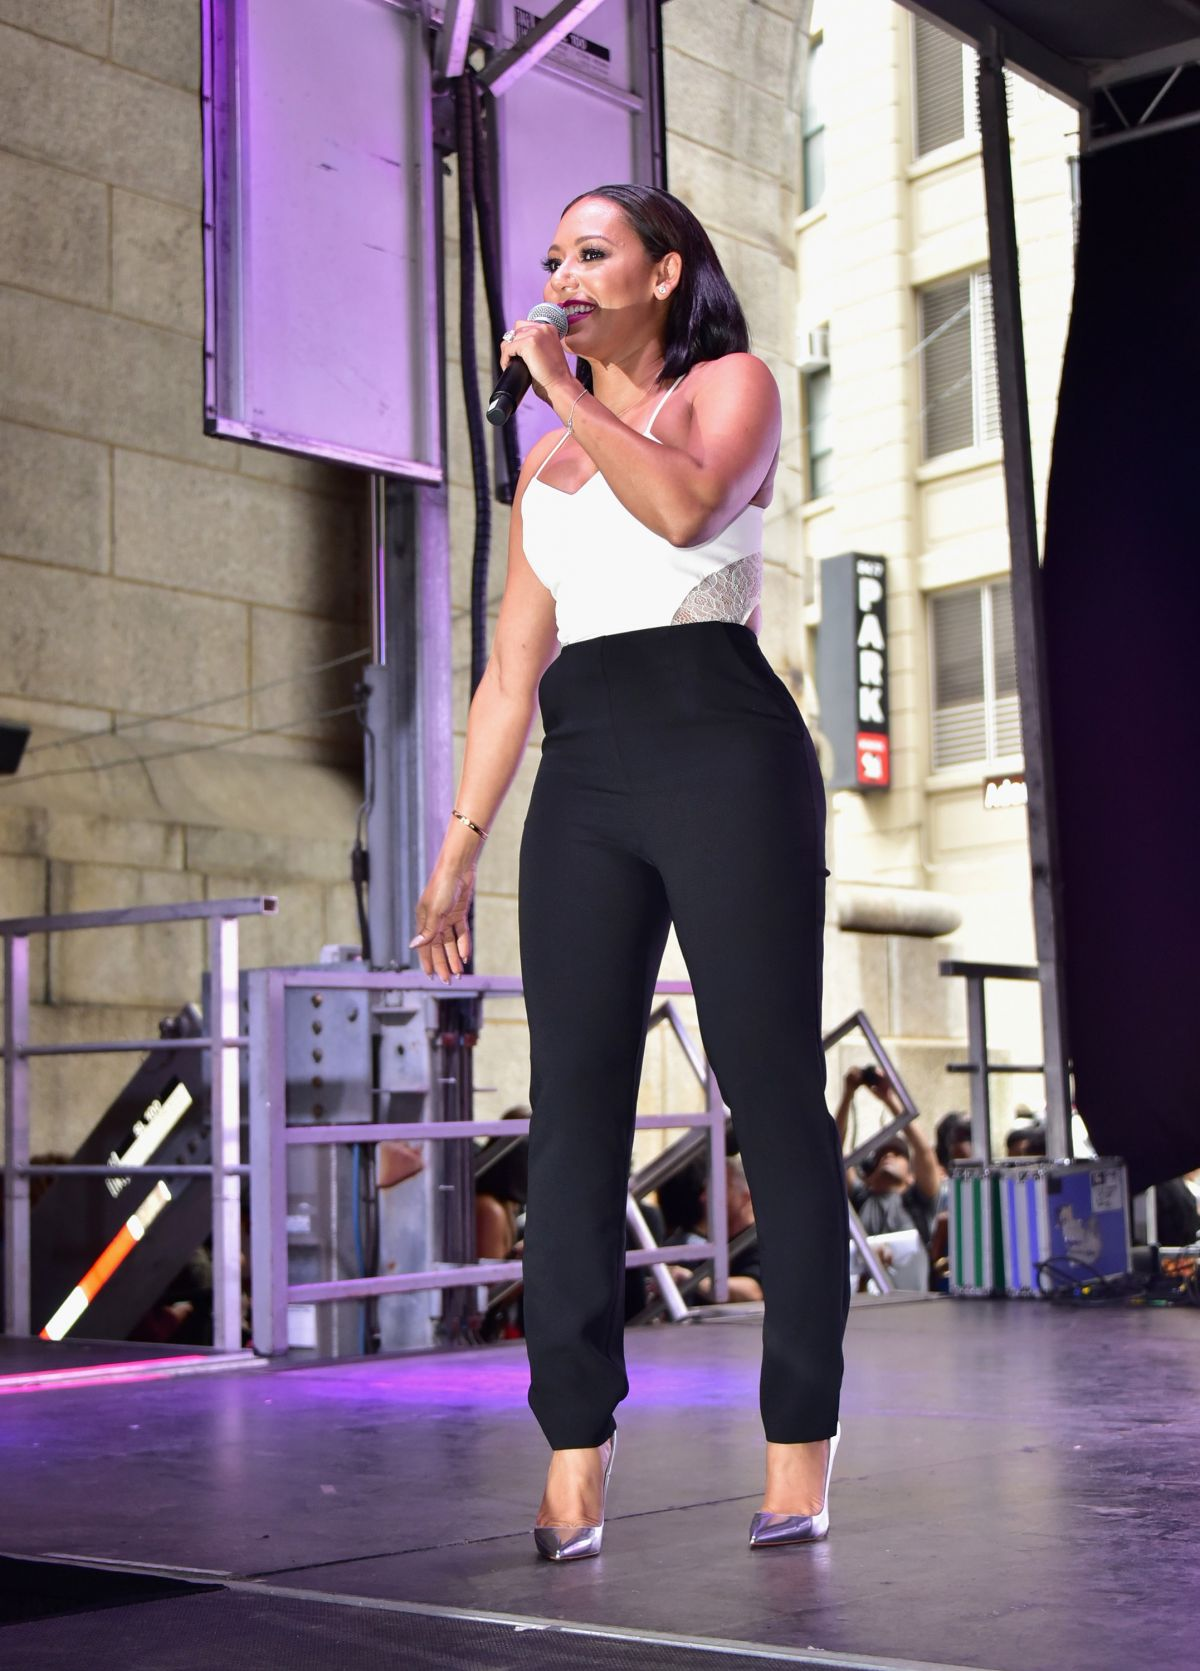 MELANIE BROWN at 2015 Essence Street Style Block Party in New York 09/13/2015